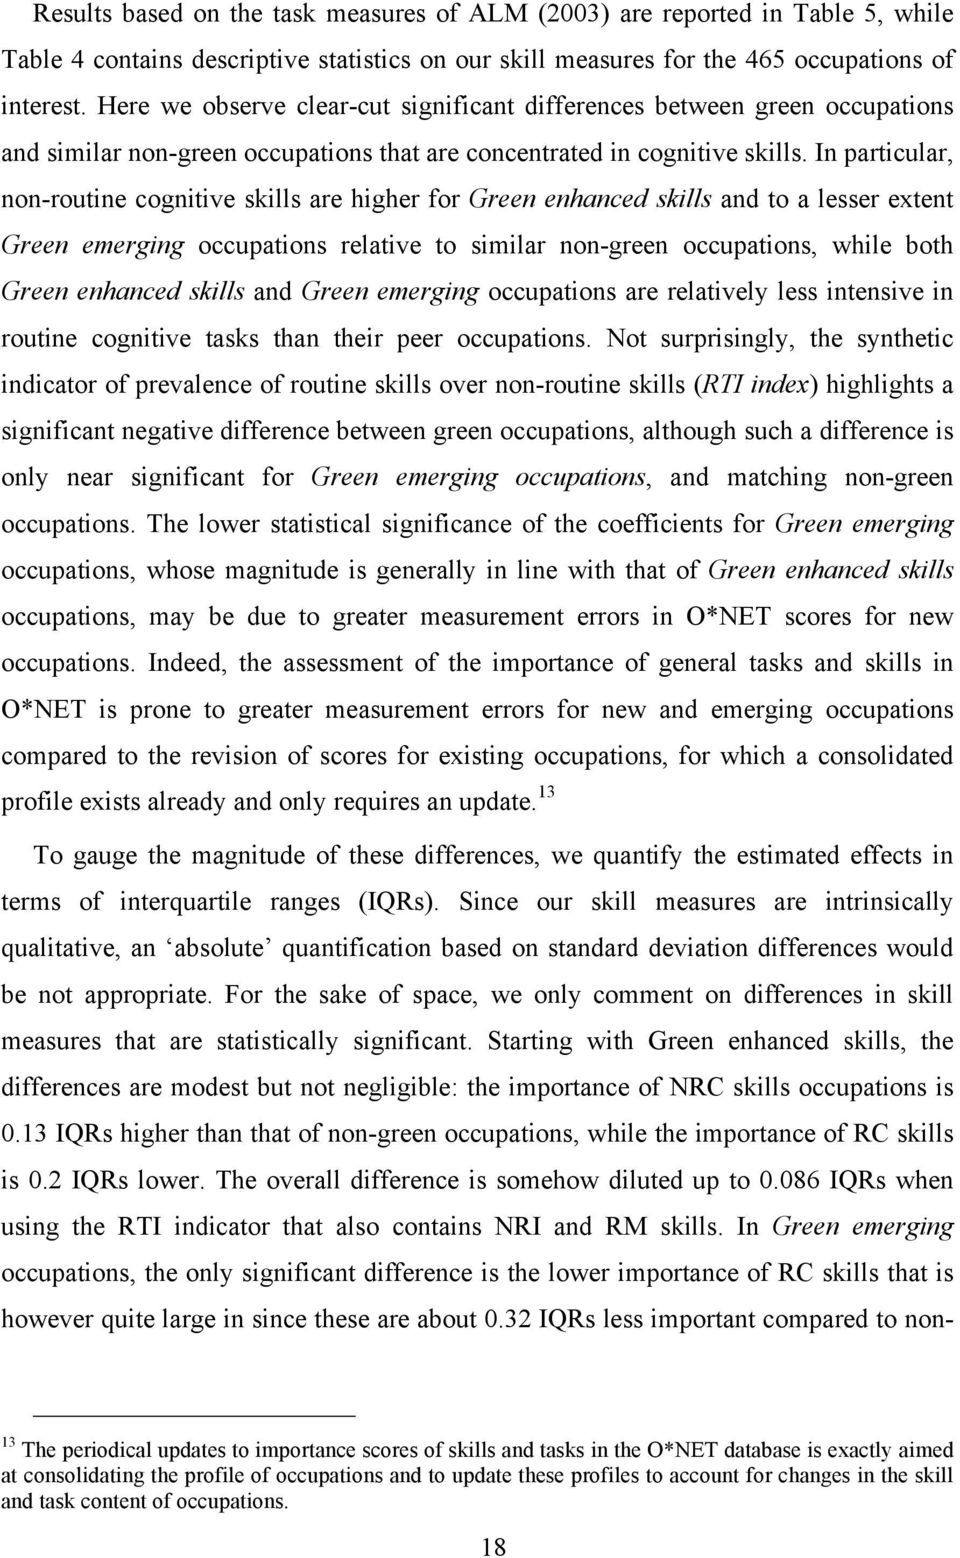 In particular, non-routine cognitive skills are higher for Green enhanced skills and to a lesser extent Green emerging occupations relative to similar non-green occupations, while both Green enhanced